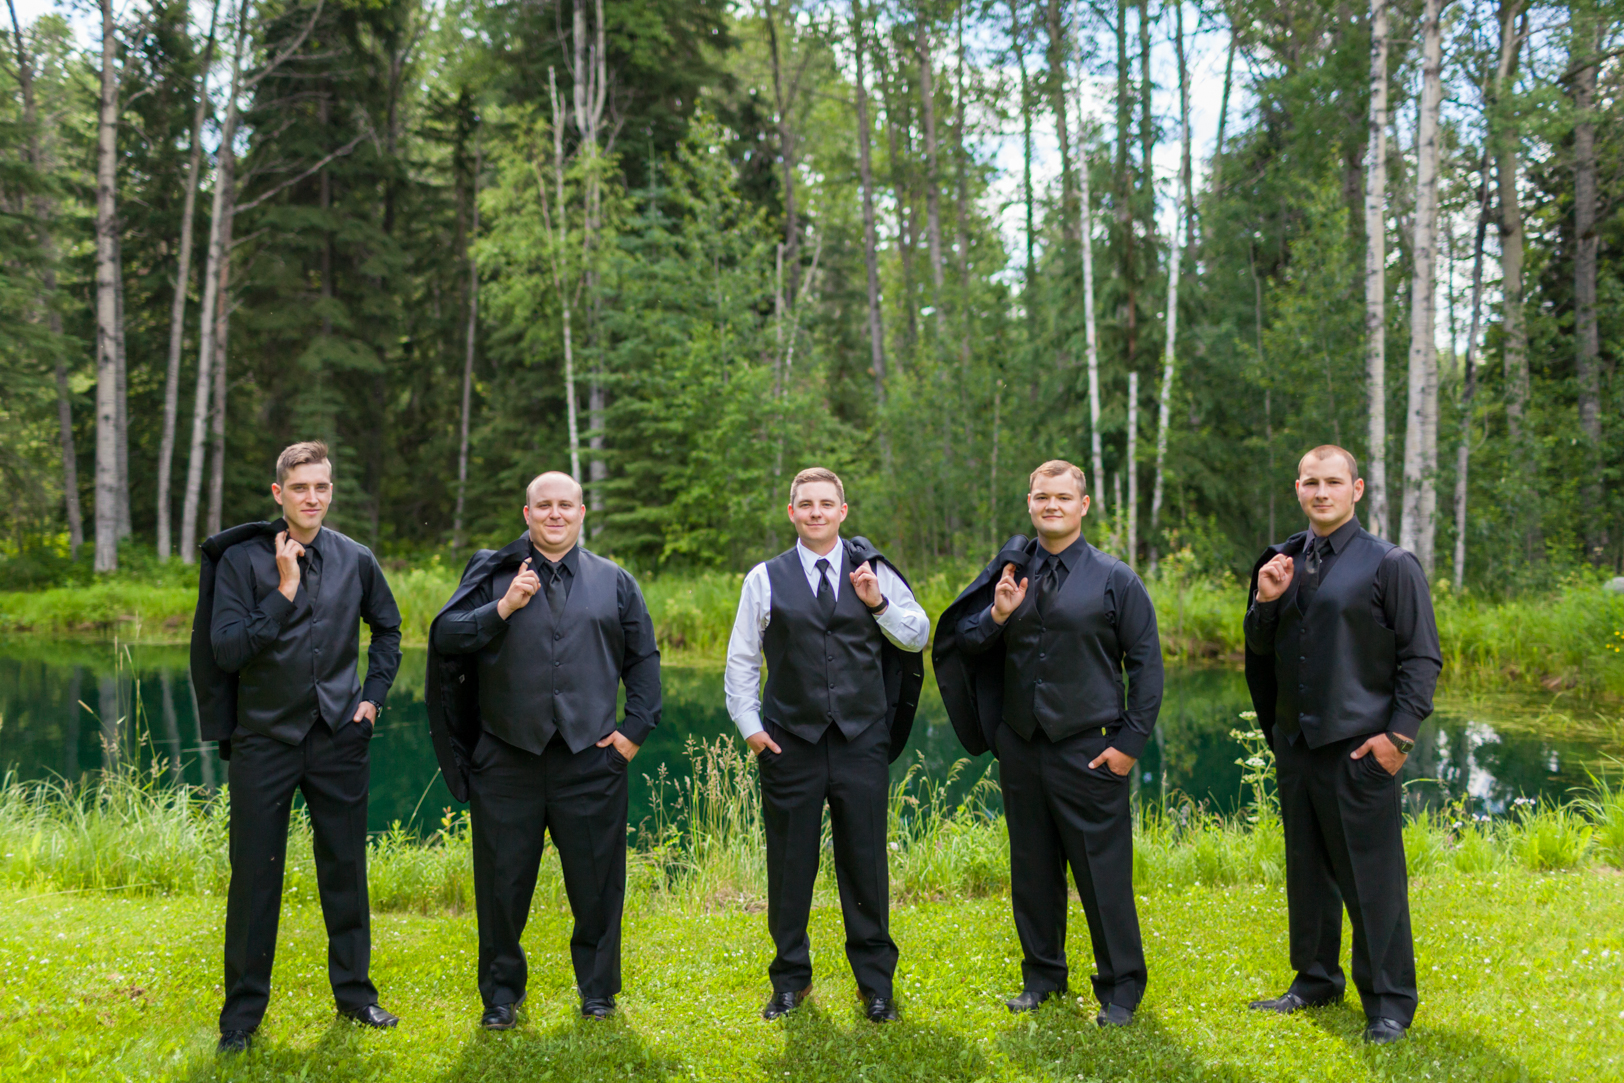 Photo of Groom with Groomsmen